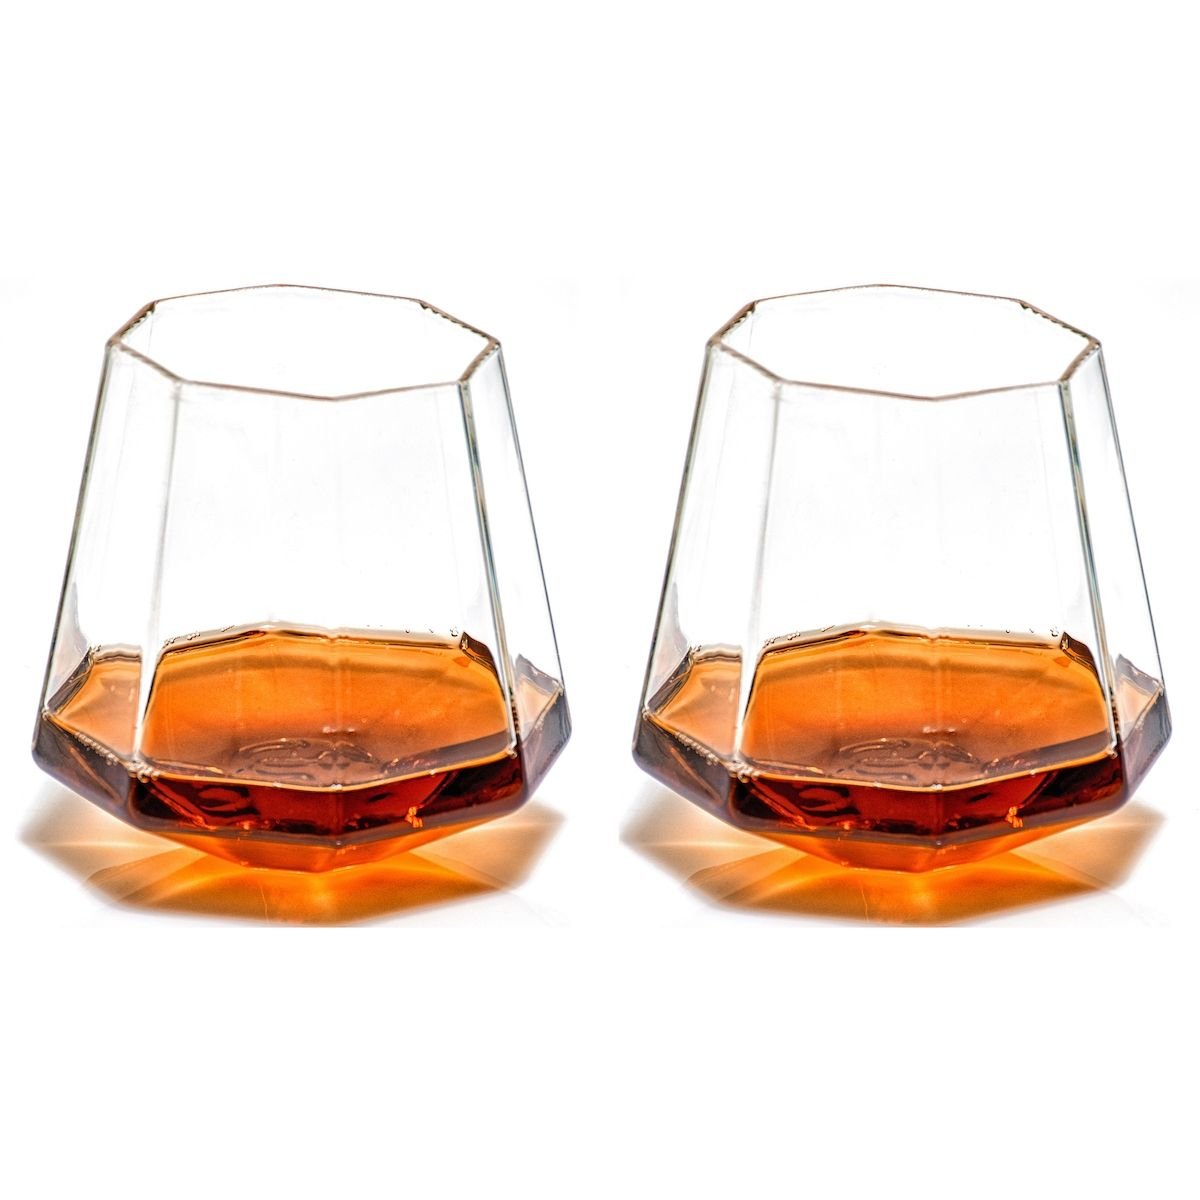 Diamond Shaped Bourbon Glasses